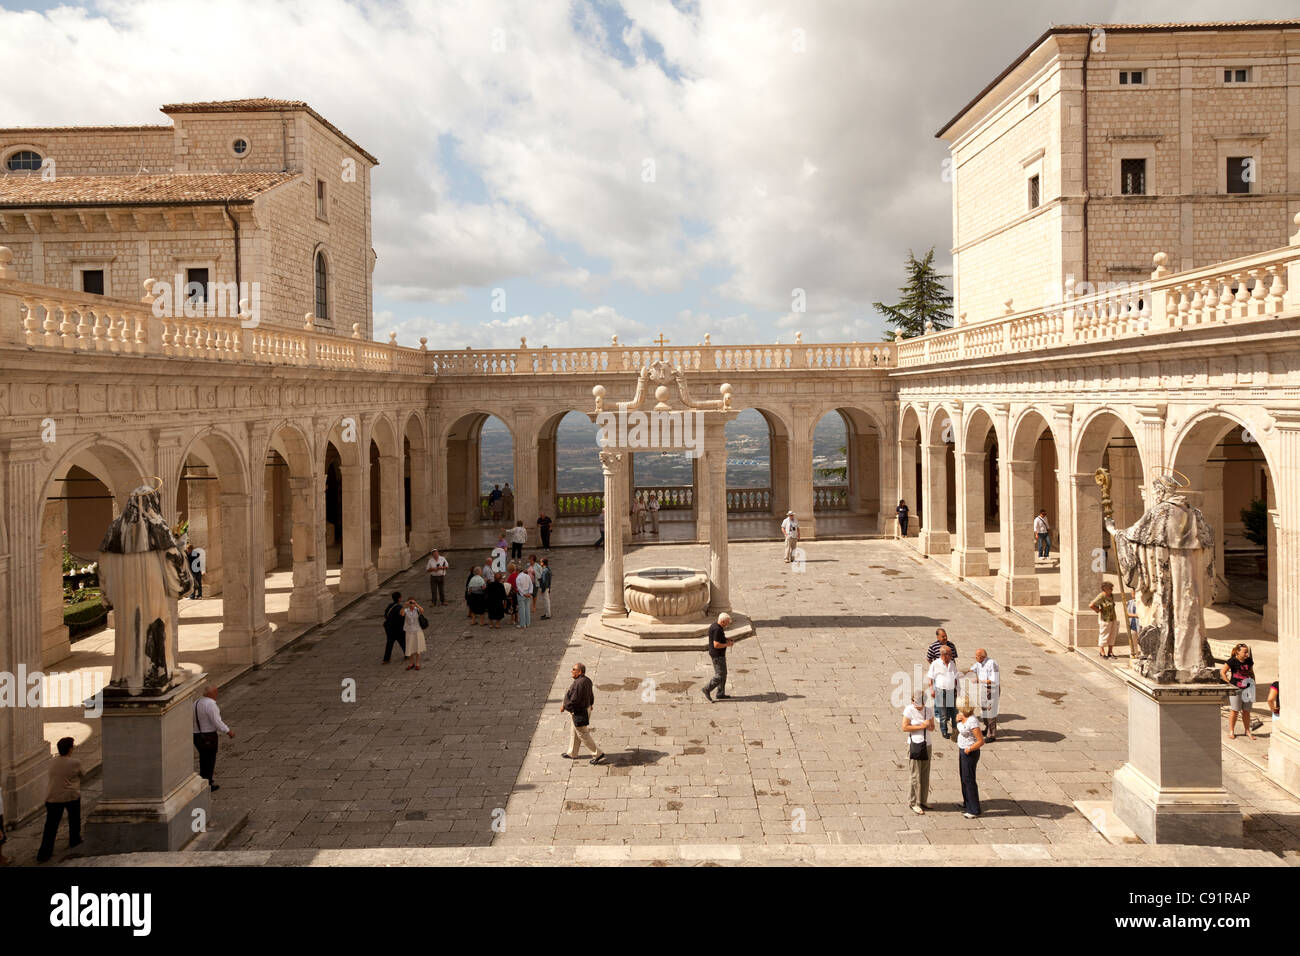 Cloître de Bramante à l'abbaye de Monte Cassino Photo Stock